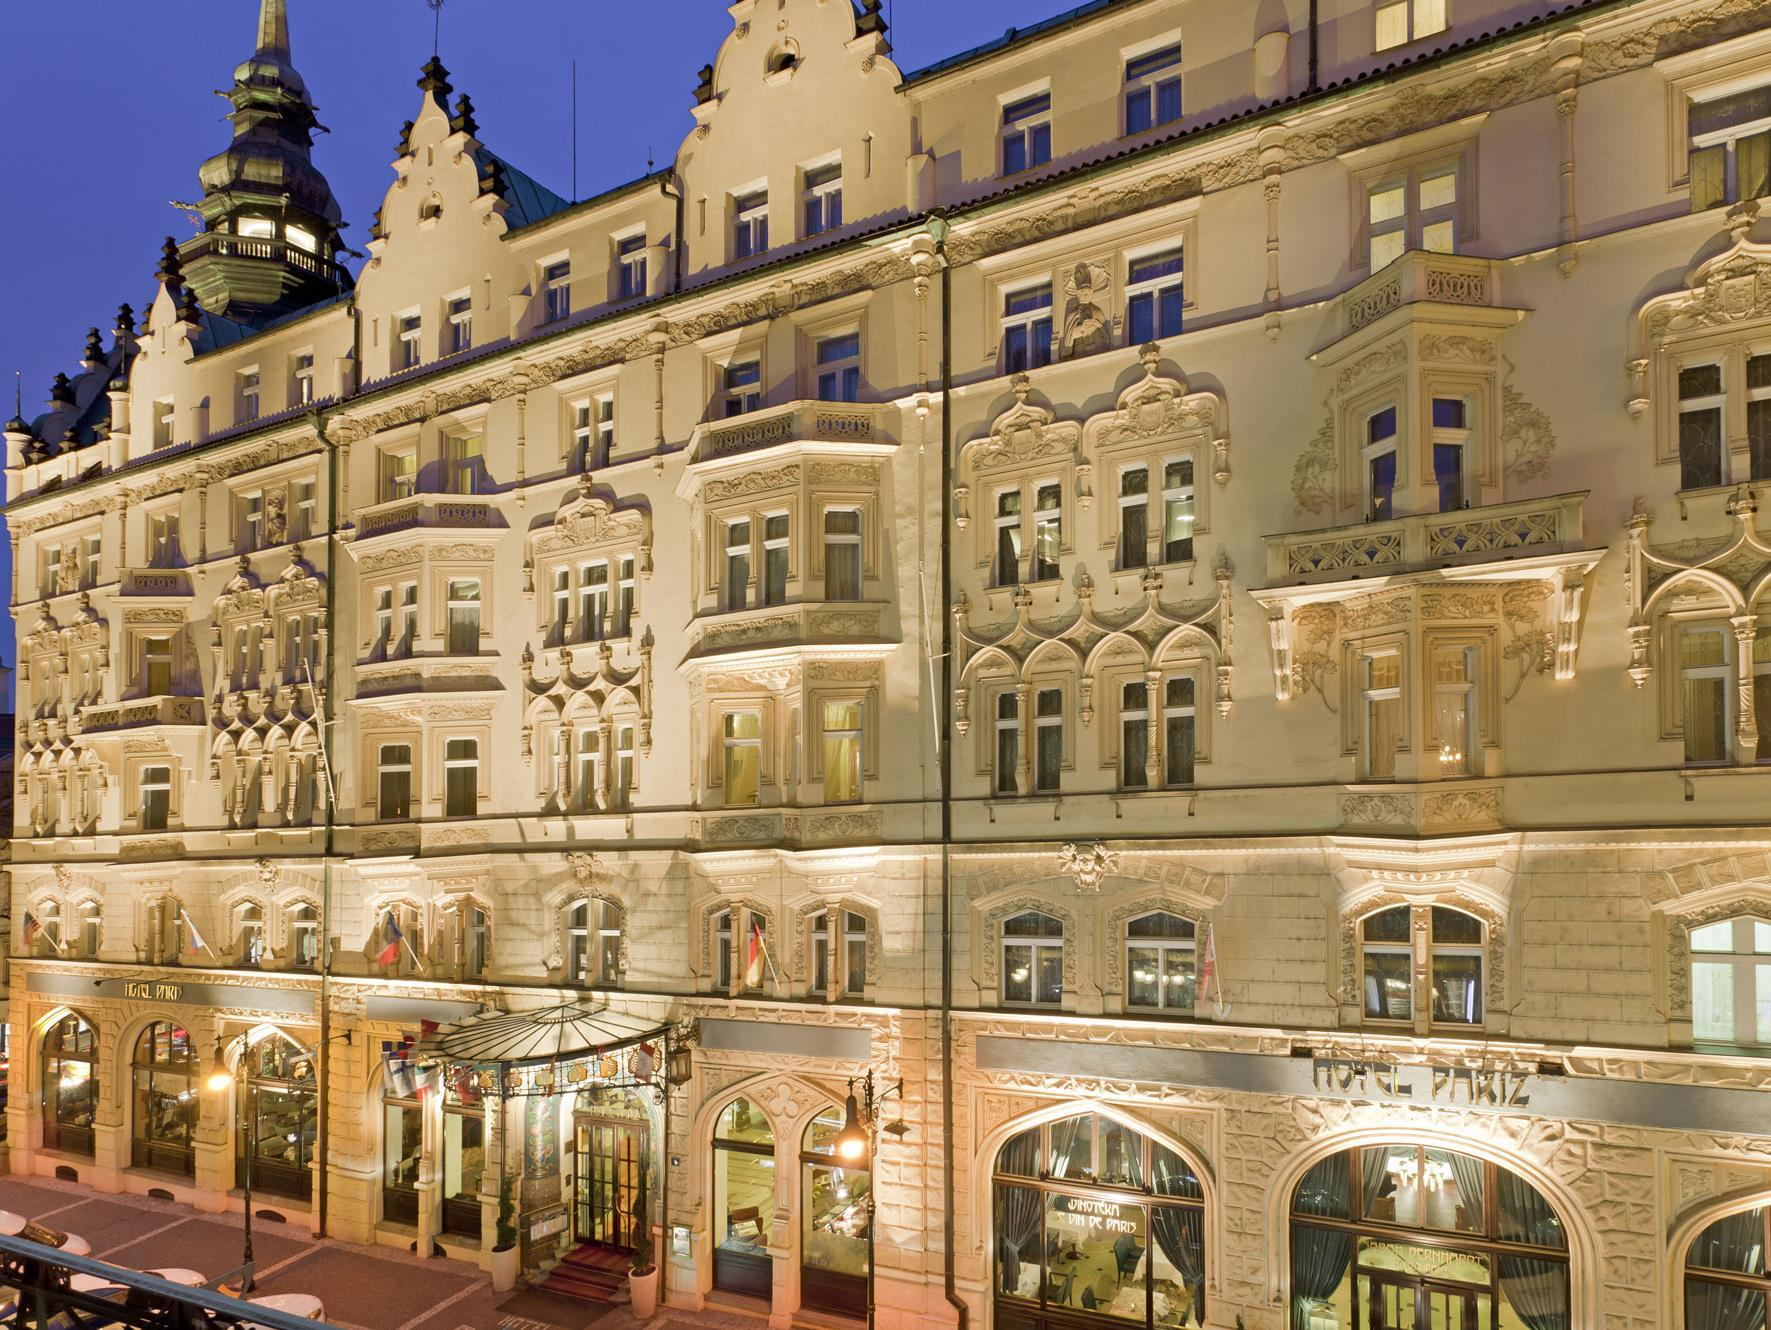 Hotel paris prague in czech republic europe for Europe hotel prague